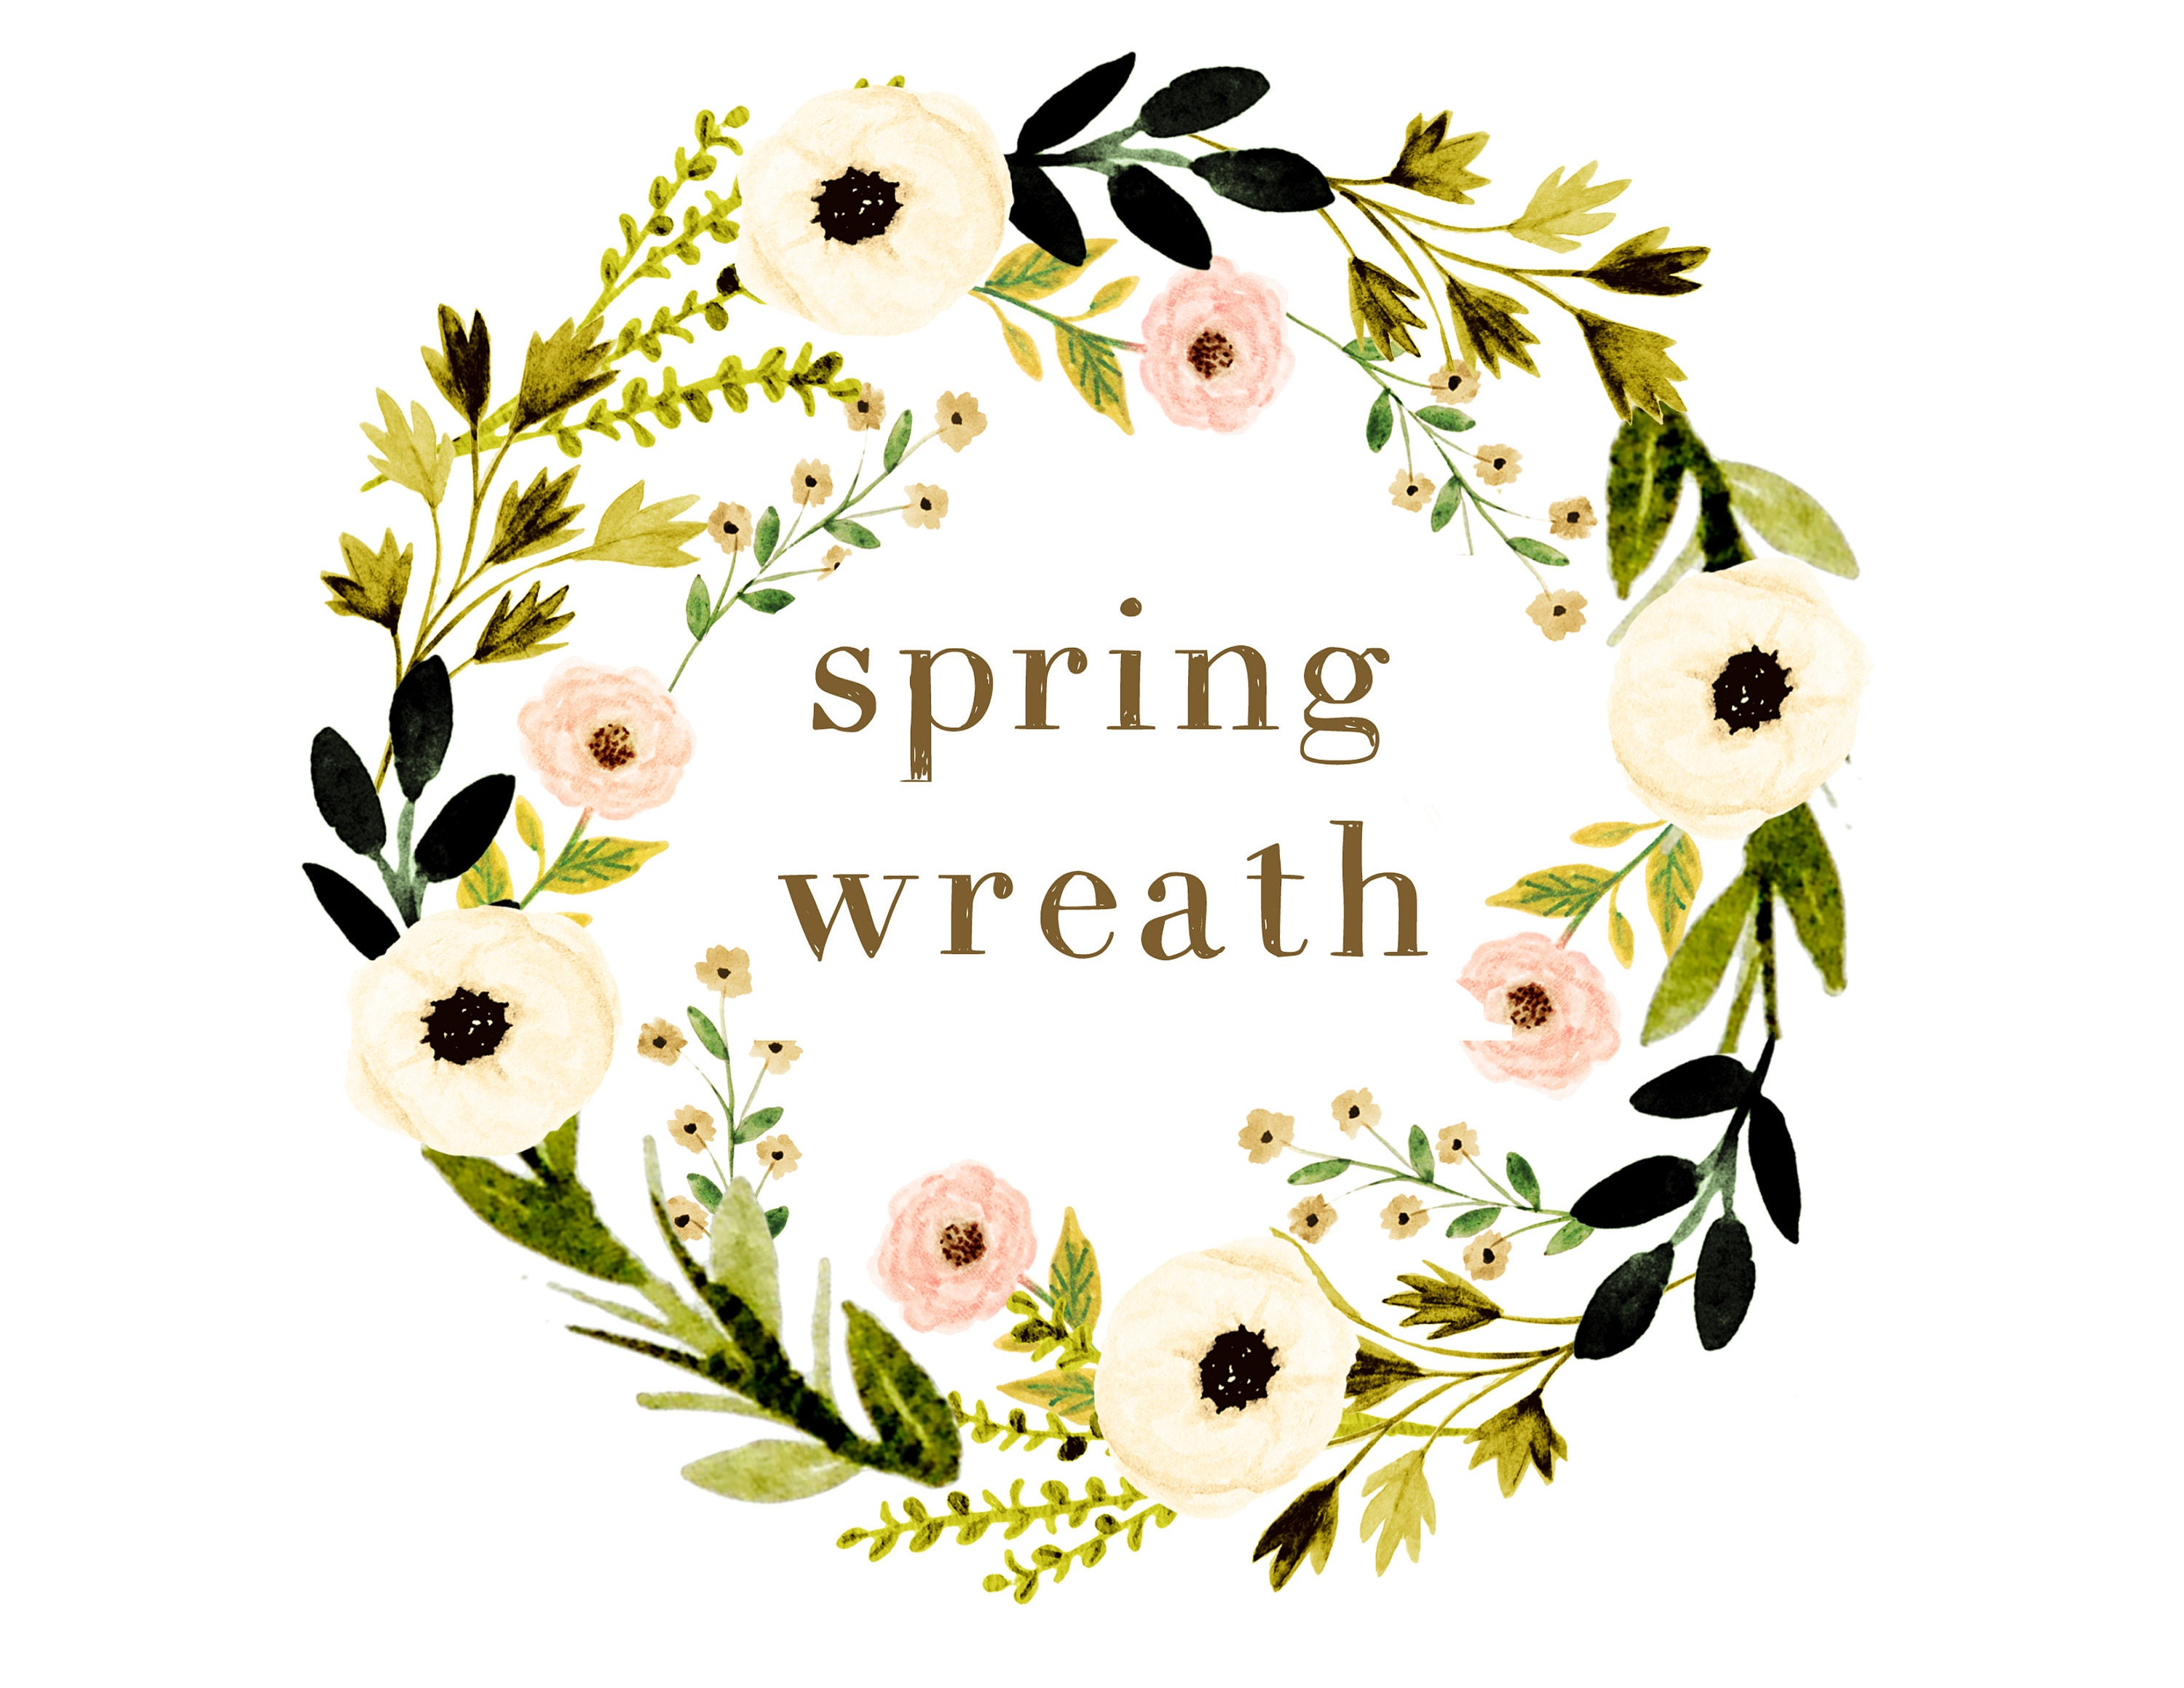 Floral clipart spring clipart floral wreath wedding | Etsy